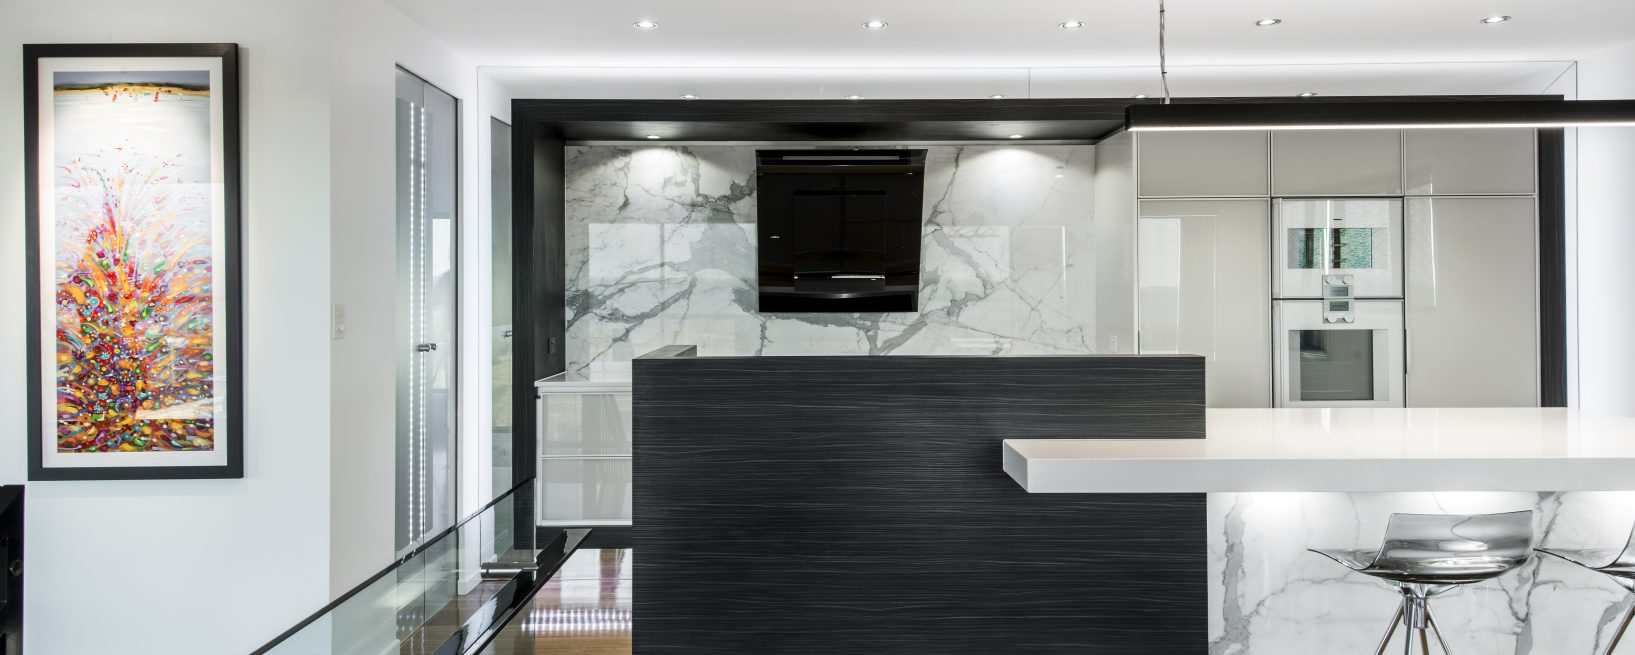 Kitchen Design Brisbane Australia